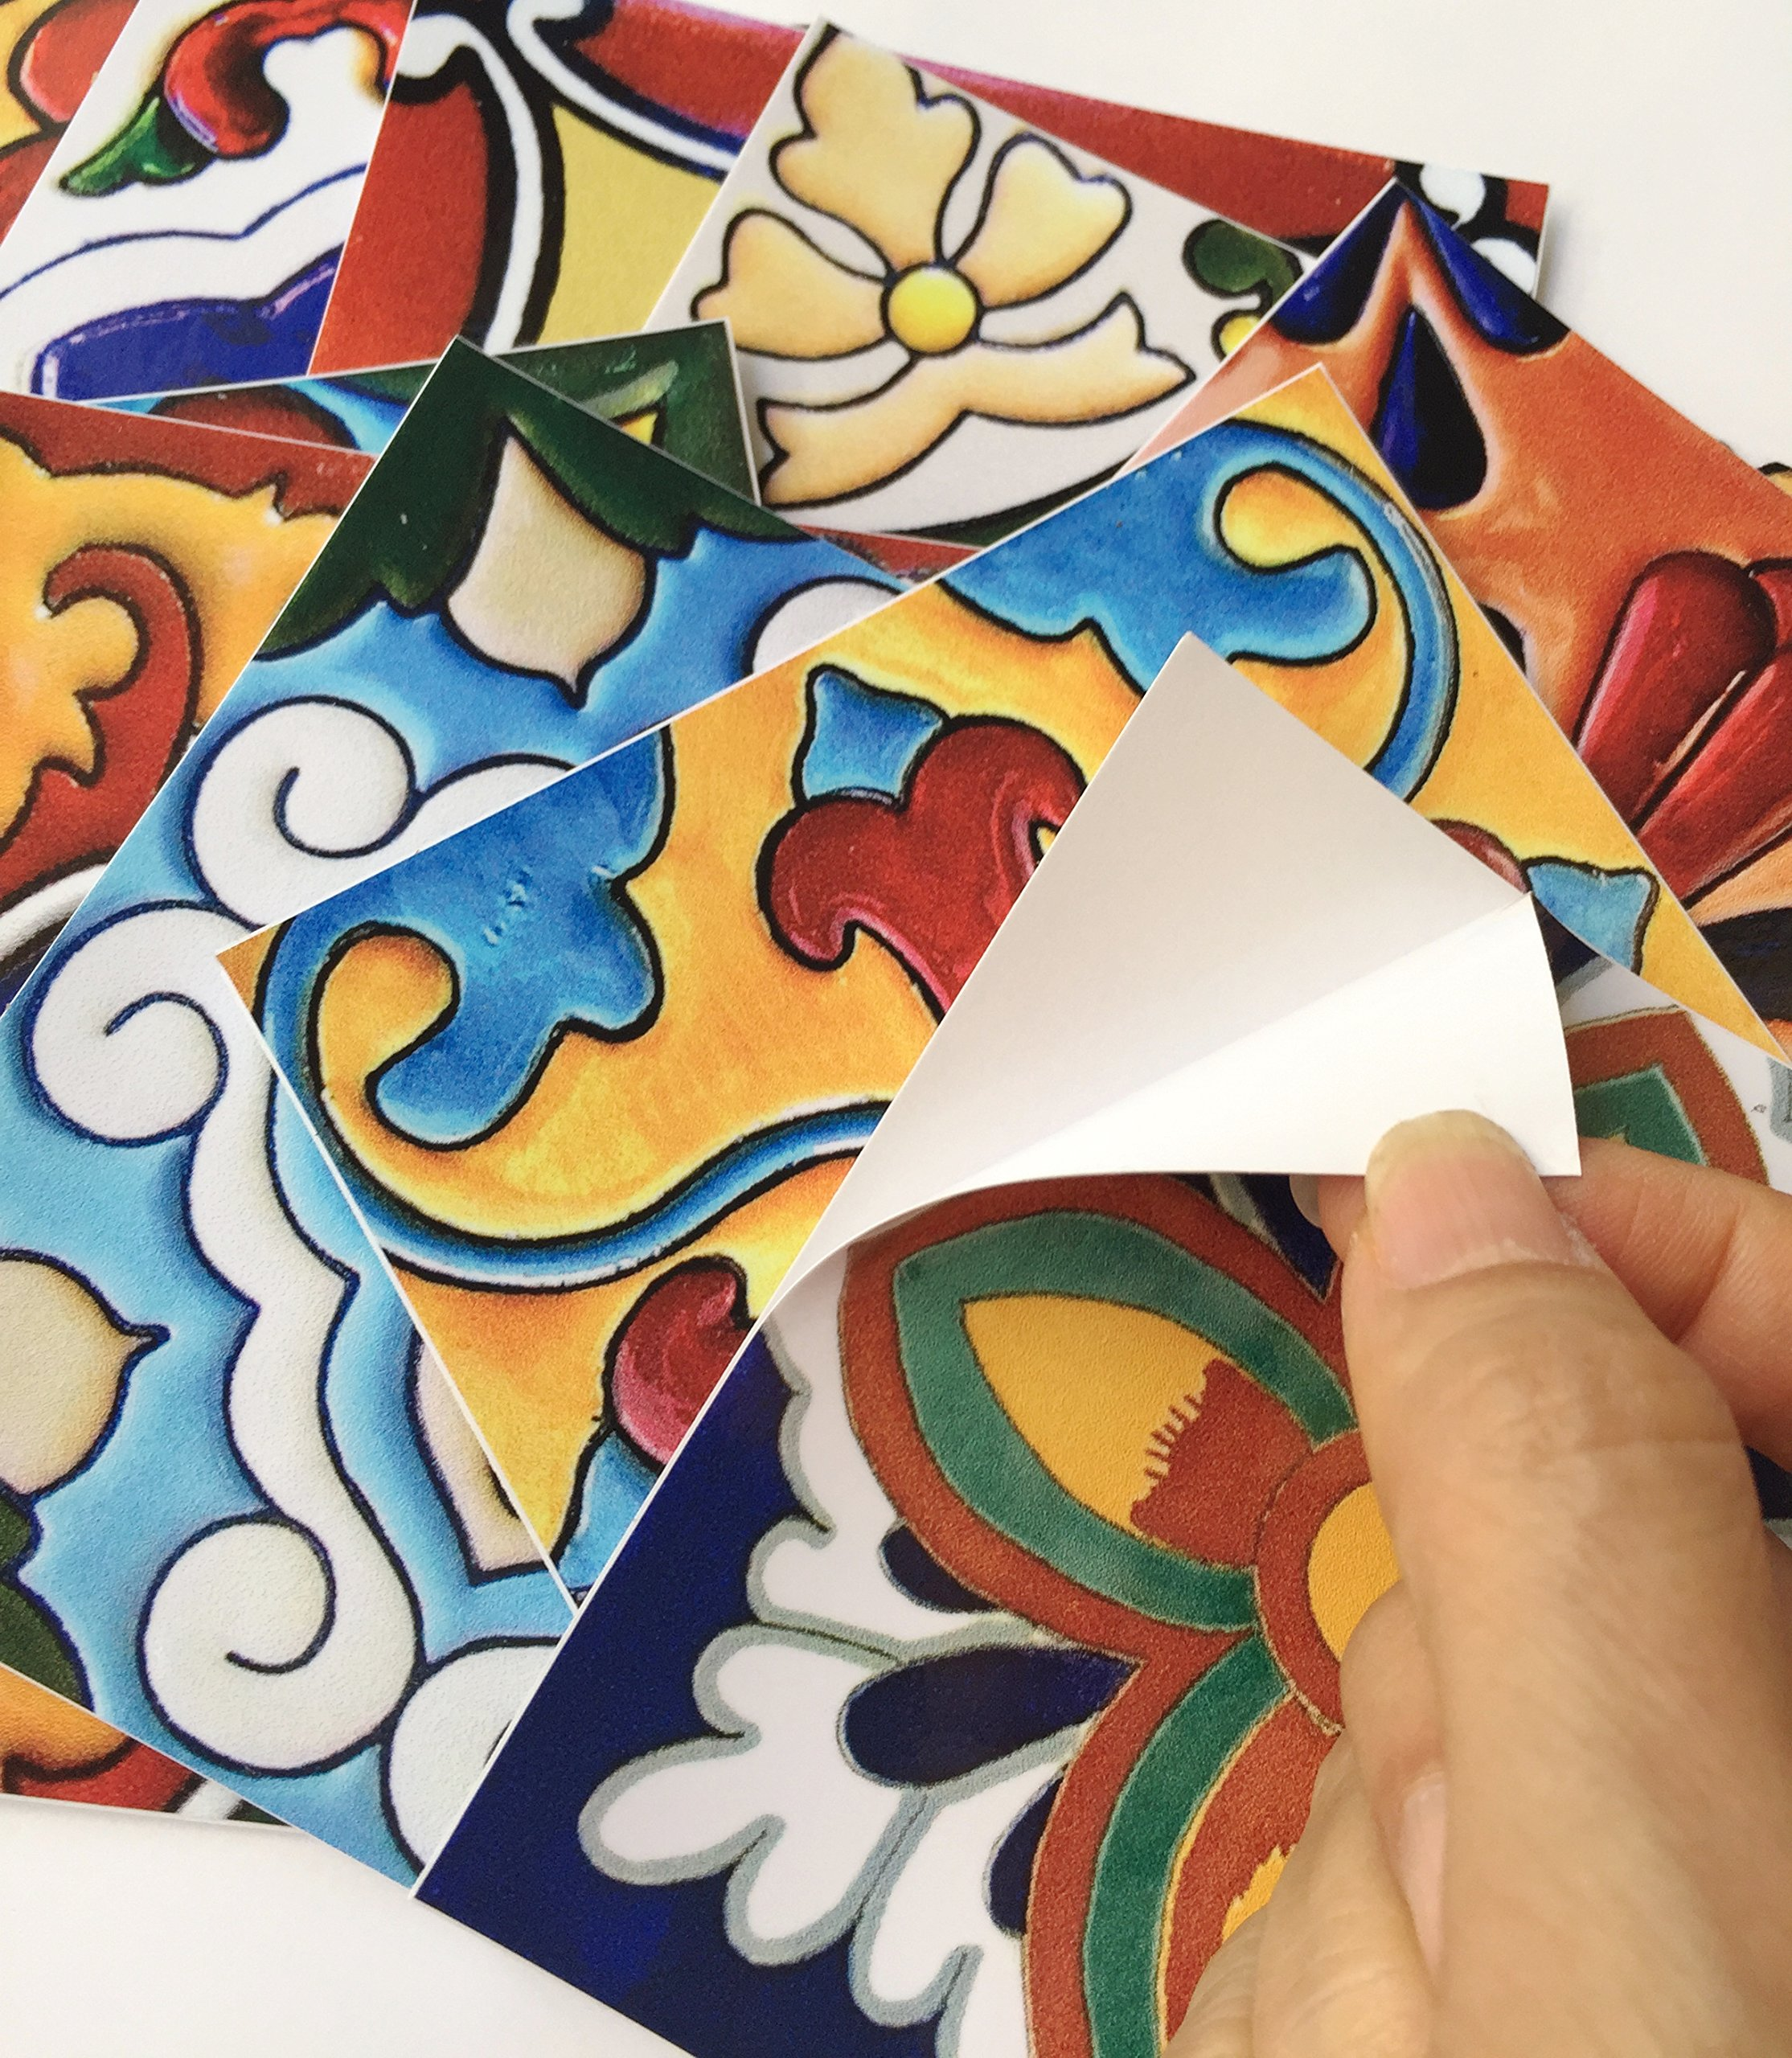 SnazzyDecal Tile Stickers Mexican Spanish 40pc 4-1/4in Peel and Stick for Kitchen and Bath Tr001-4Q by SnazzyDecal (Image #6)